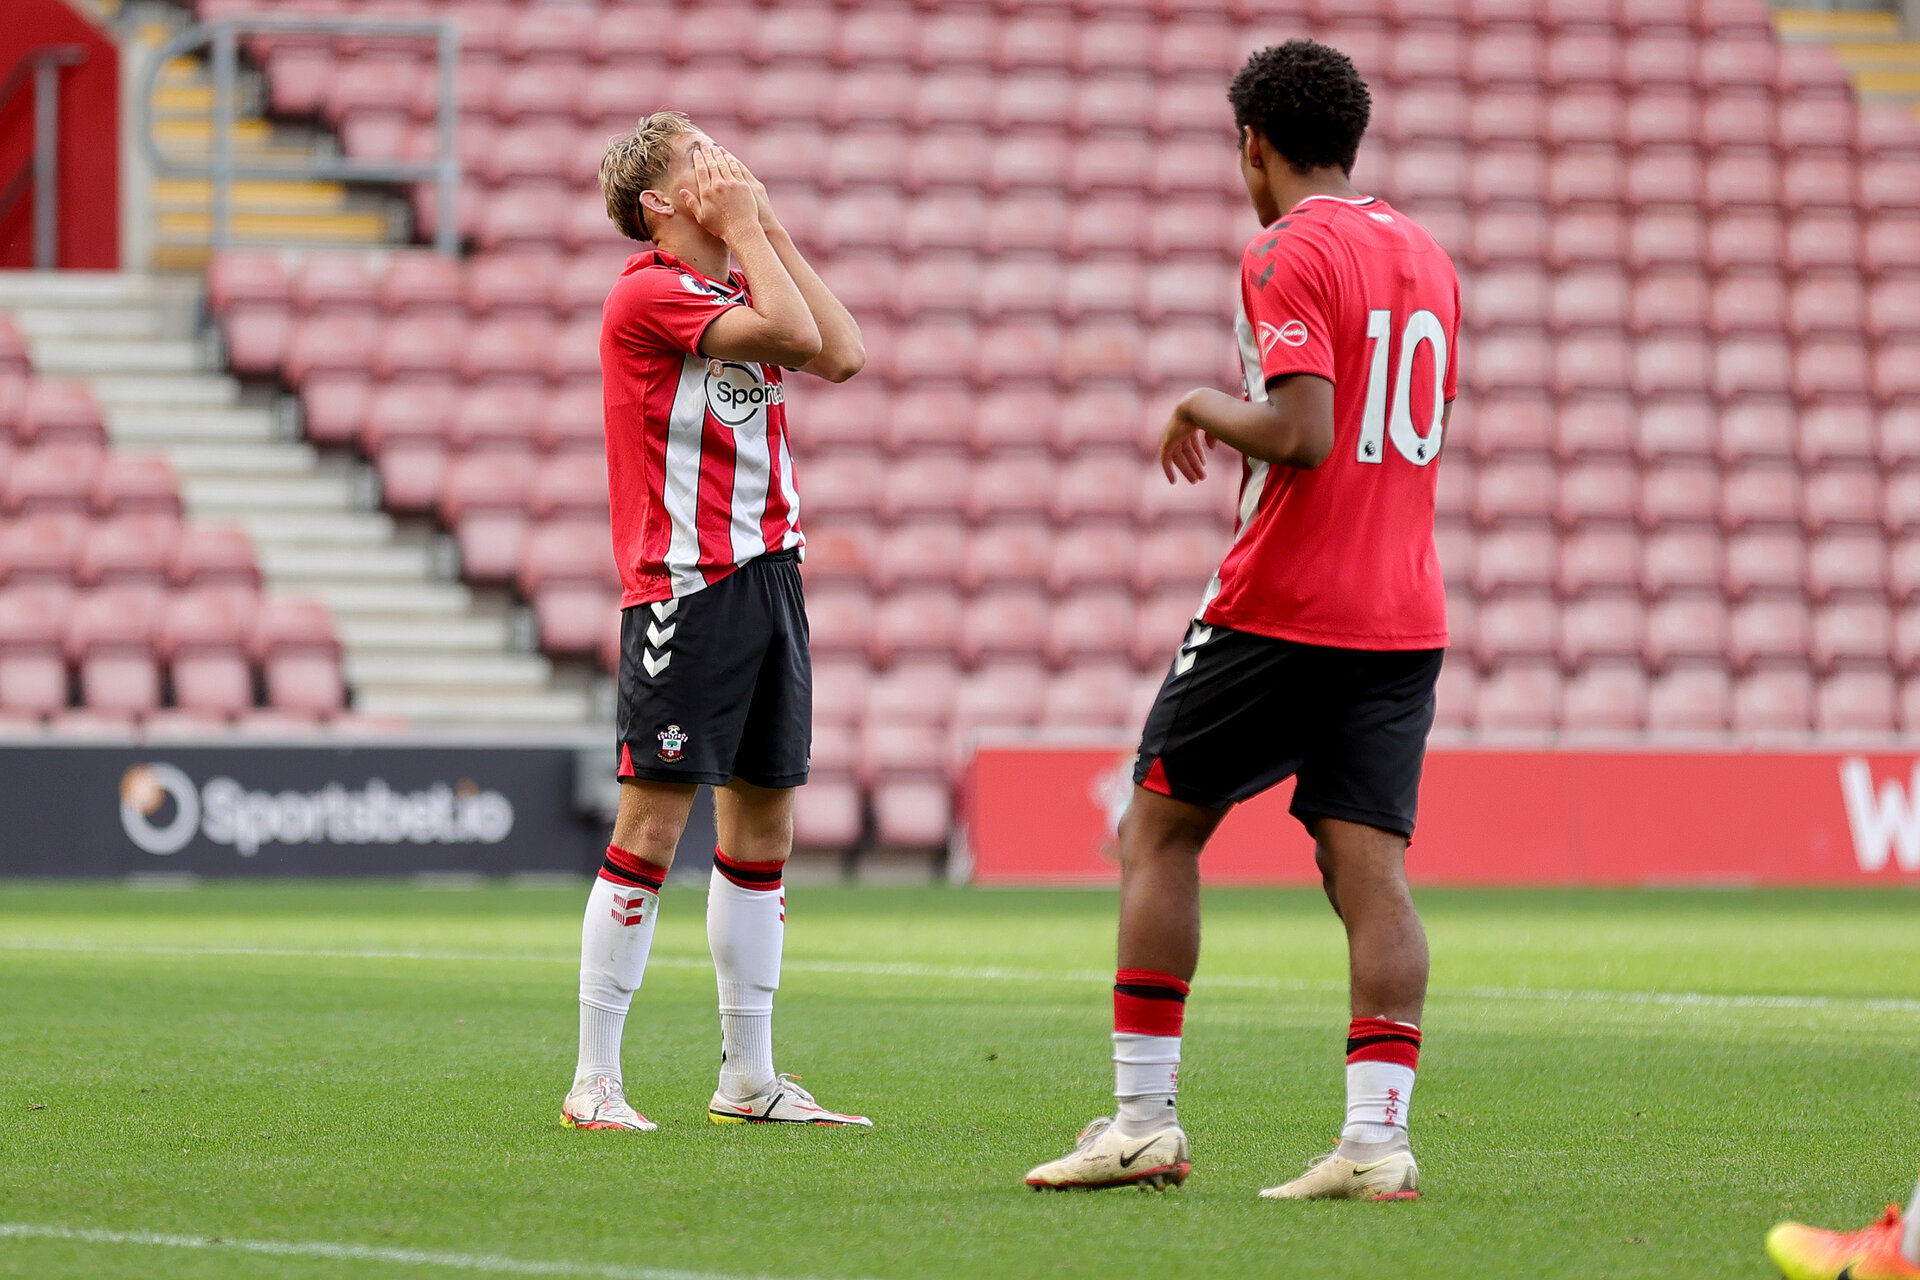 SOUTHAMPTON, ENGLAND - SEPTEMBER 19:  during the Premier League 2 match between Southampton B Team and Burnley at St Mary's Stadium on September 19, 2021 in Southampton, England. (Photo by Isabelle Field/Southampton FC via Getty Images)